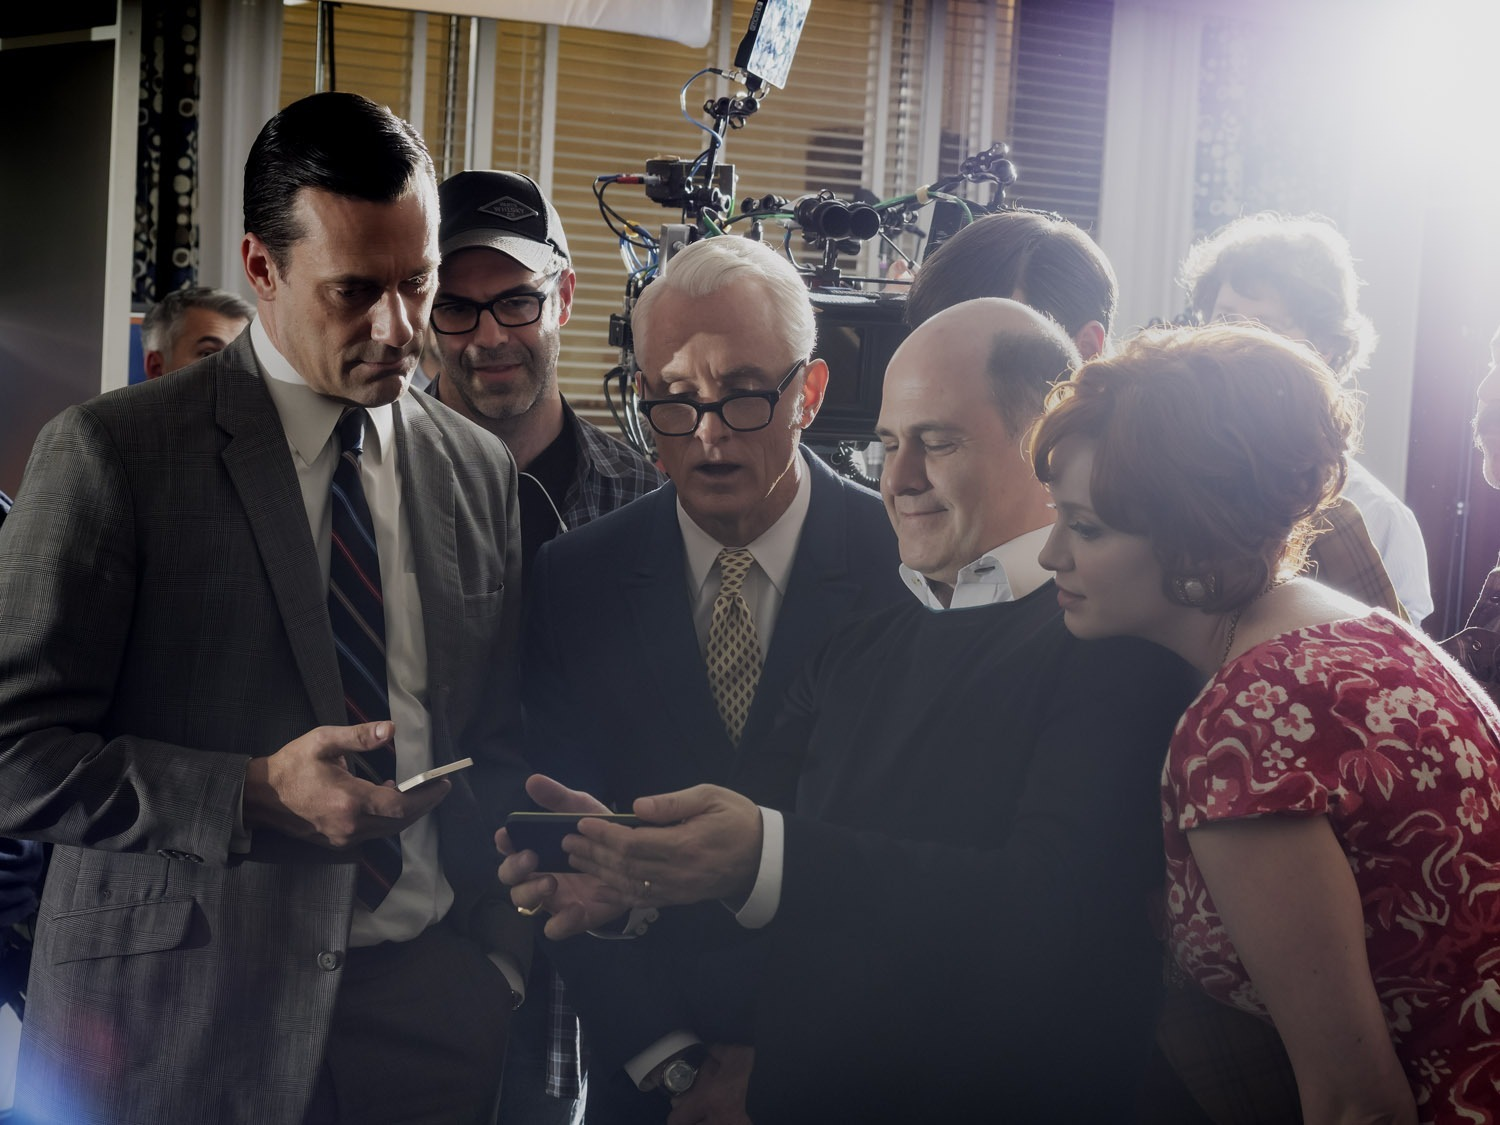 While on the Los Angeles set of Mad Men for the April 7 cover shoot, photographer Alex Majoli found that the theatricality of a TV set—above, Jon Hamm, John Slattery, Matthew Weiner and Christina Hendricks check out a phone pic—was something he recognized from working in other settings.  In conflict zones, hospitals, cities, I found a sort of theater in it,  he explains.  The moment you are there with a camera, everyone has a role, me included. So photographing actors on a Hollywood set was like a present for me, searching for those theatrical scenes.